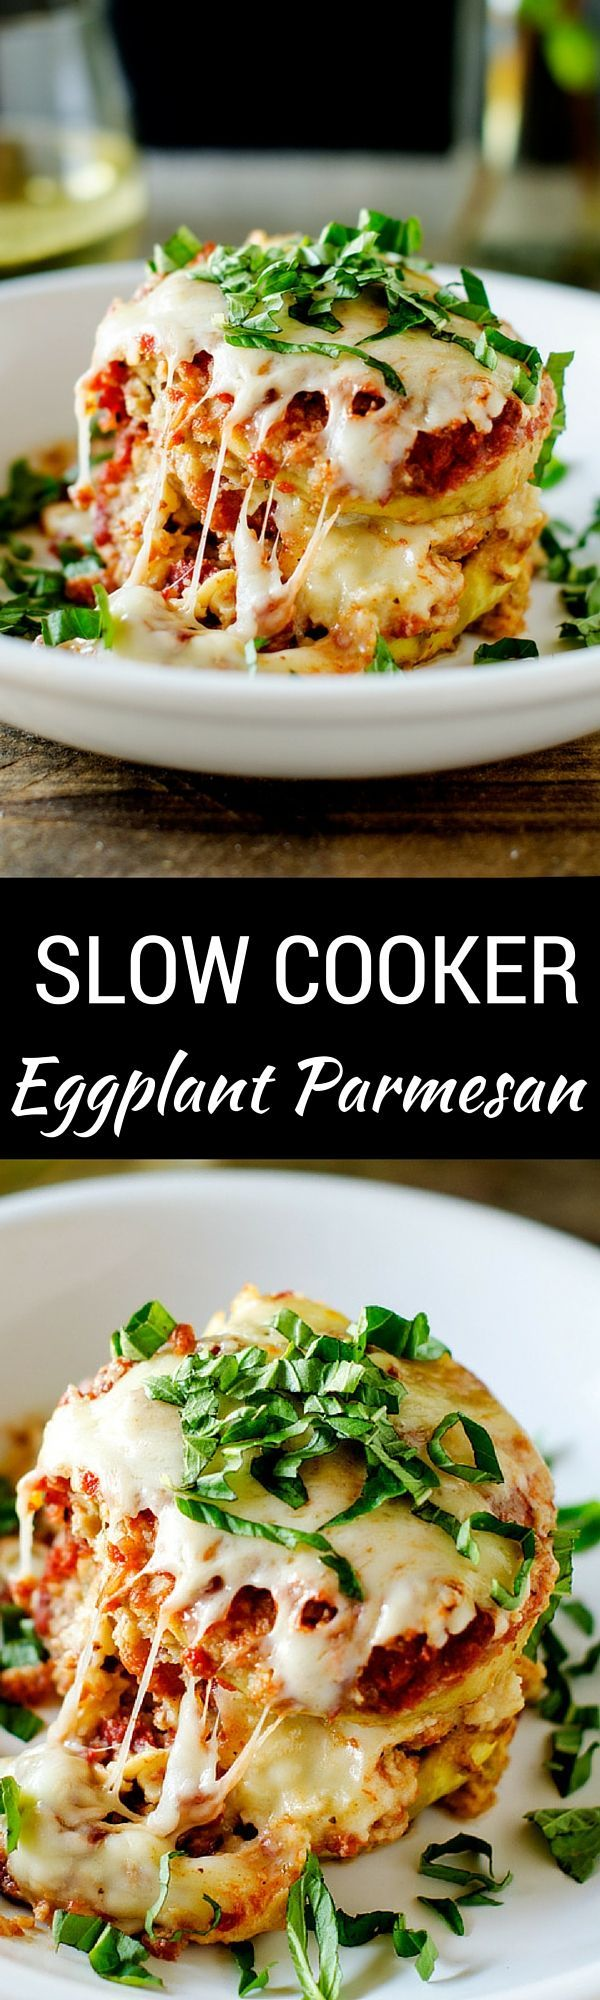 tiffanys shop Slow Cooker Eggplant Parmesan  Gluten Free and so easy Perfect for simple entertaining